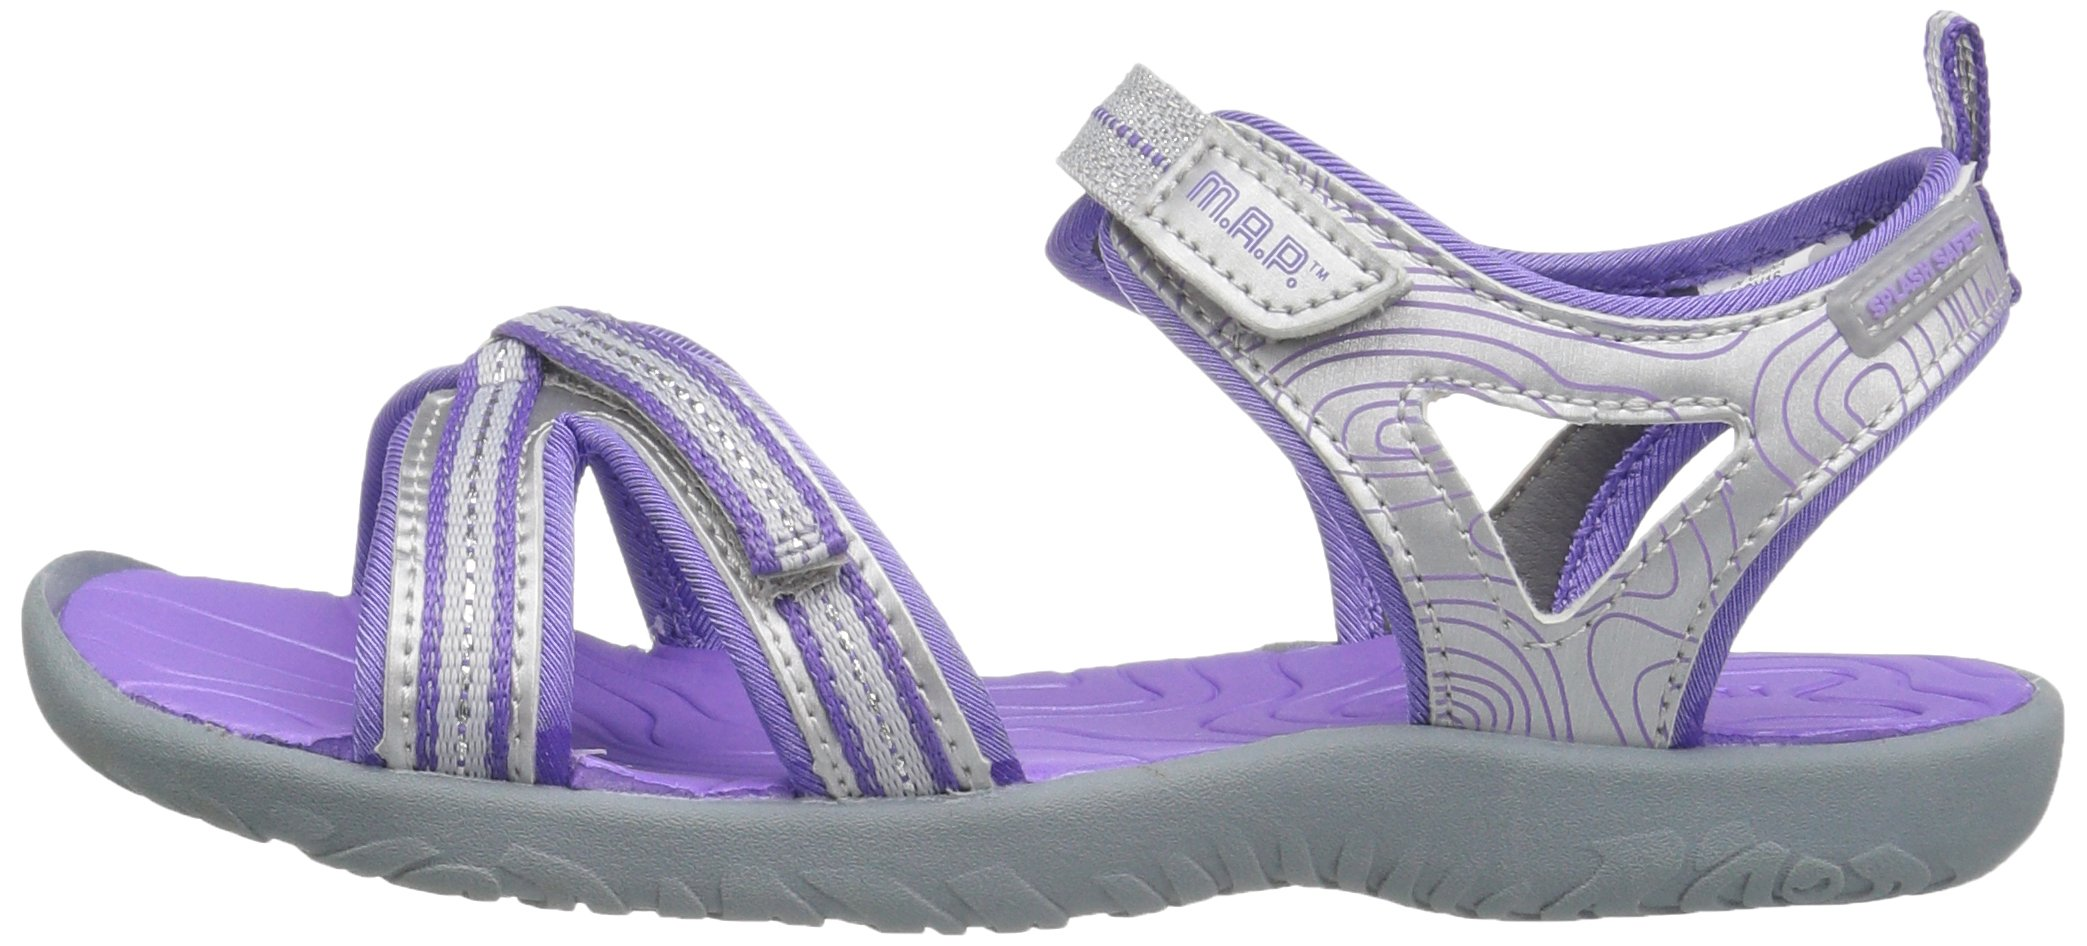 M.A.P. Lorna Girl's Outdoor Sandal, Silver/Purple, 2 M US Little Kid by M.A.P. (Image #5)